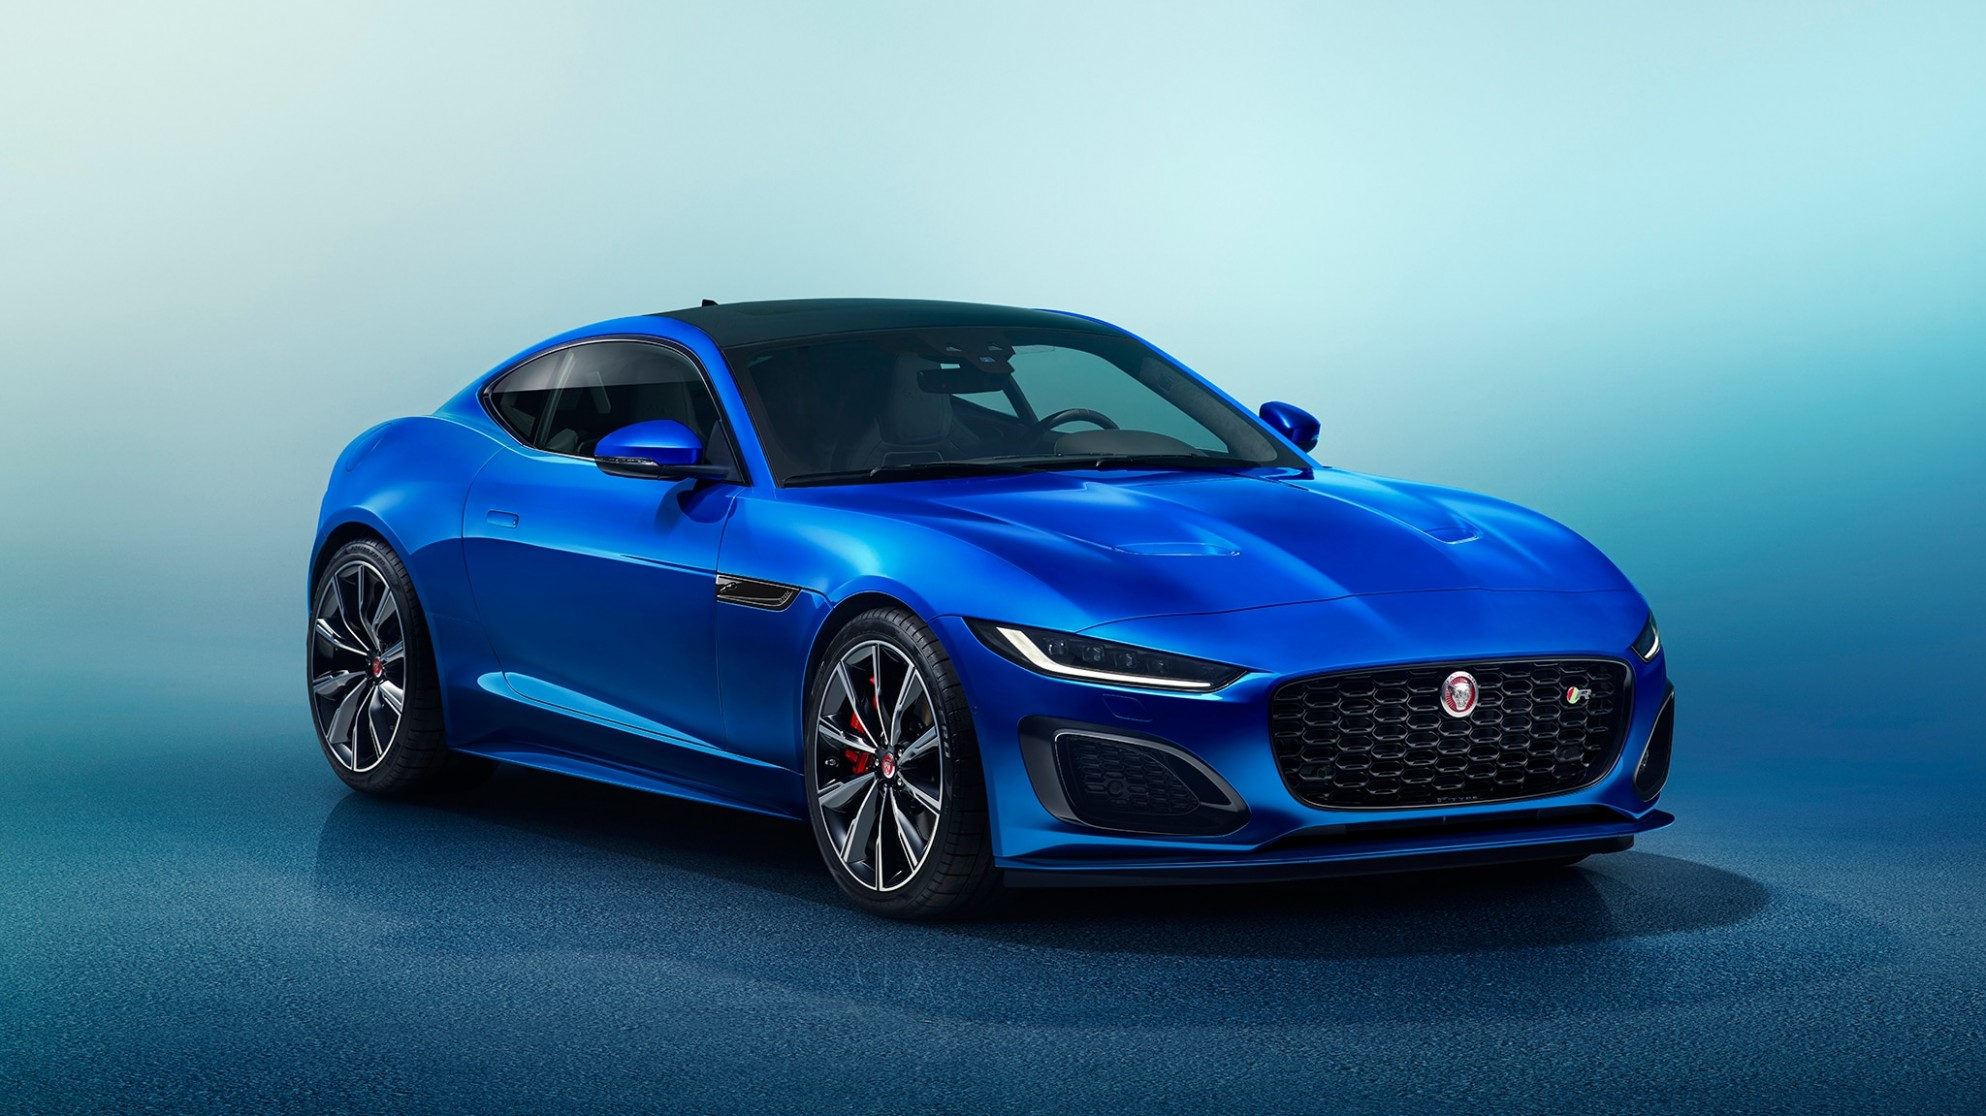 4 Jaguar F-Type First Look: Meaner on the Inside and Out - Jaguar Coupe 2021